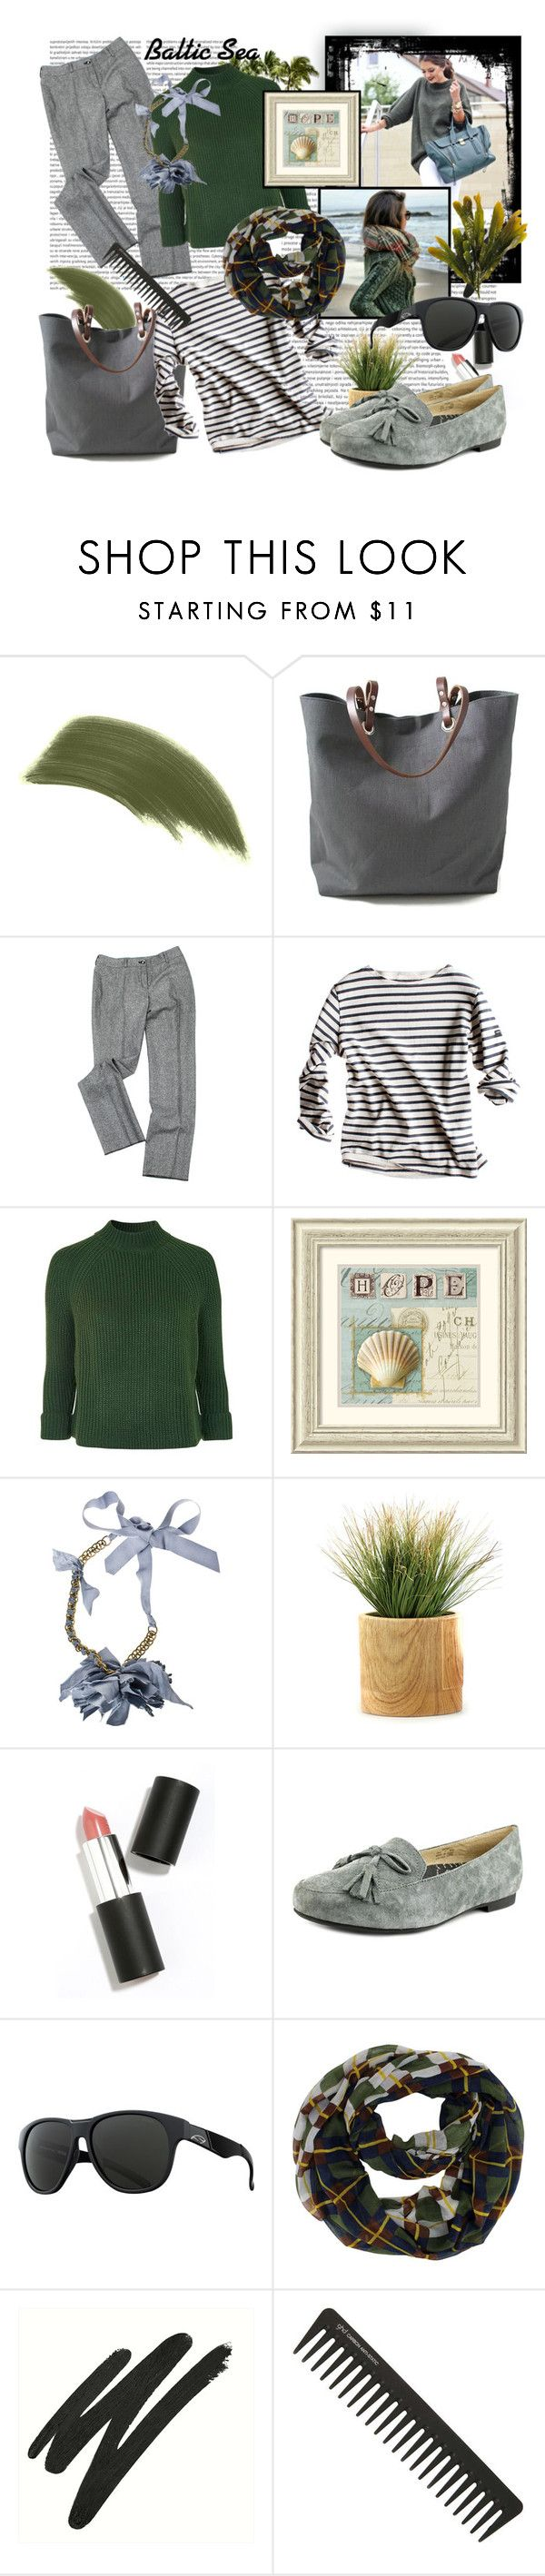 """Baltic Sea"" by tasha1973 ❤ liked on Polyvore featuring By Terry, Independent Reign, Екатерина Смолина, Topshop, Lanvin, Sigma Beauty, Propét, Smith, Vincent Longo and GHD"